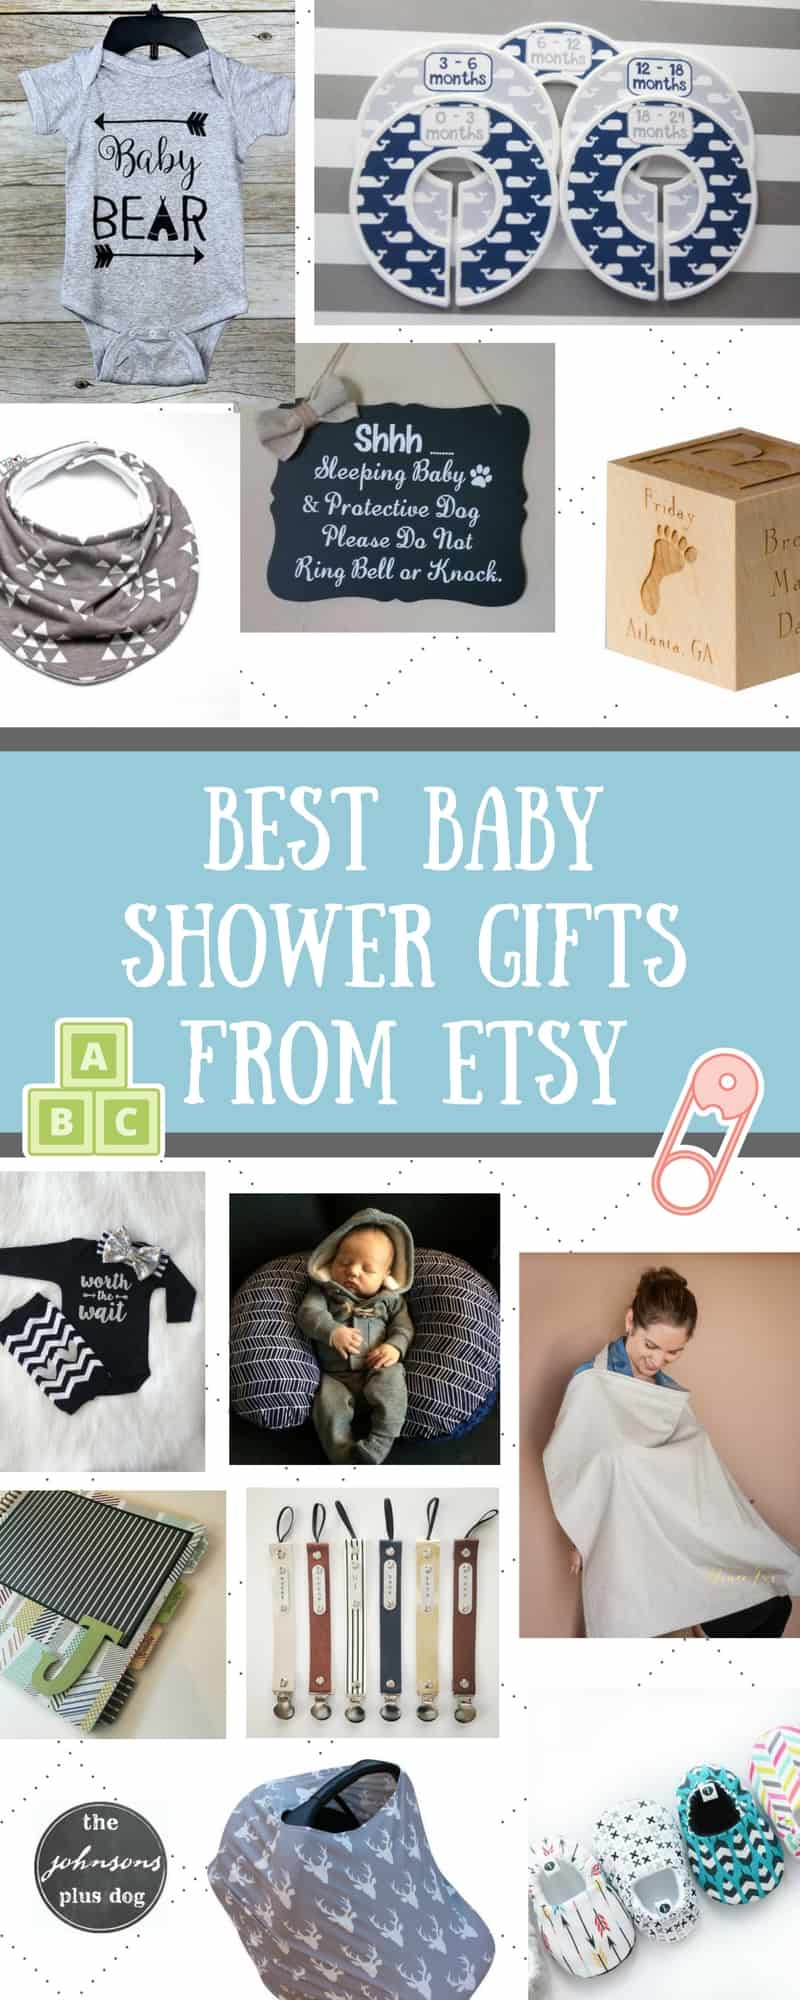 Pleasing Baby Shower Gifts From Etsy Baby Shower Gifts From Etsy Making Manzanita Etsy Baby Shower Banner Etsy Baby Shower Decorations baby Etsy Baby Shower